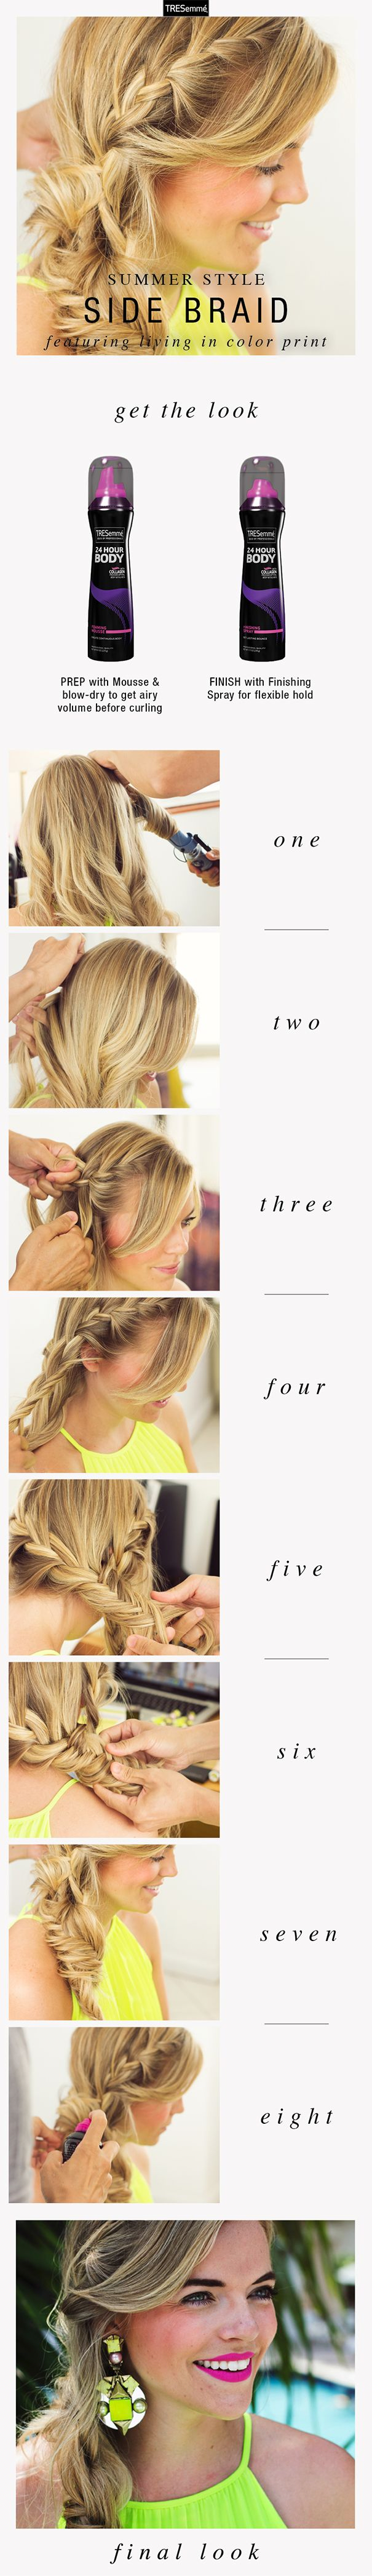 Get the Look: Gorgeous Undone Side Braid on Kristin Clark of Living in Color Print